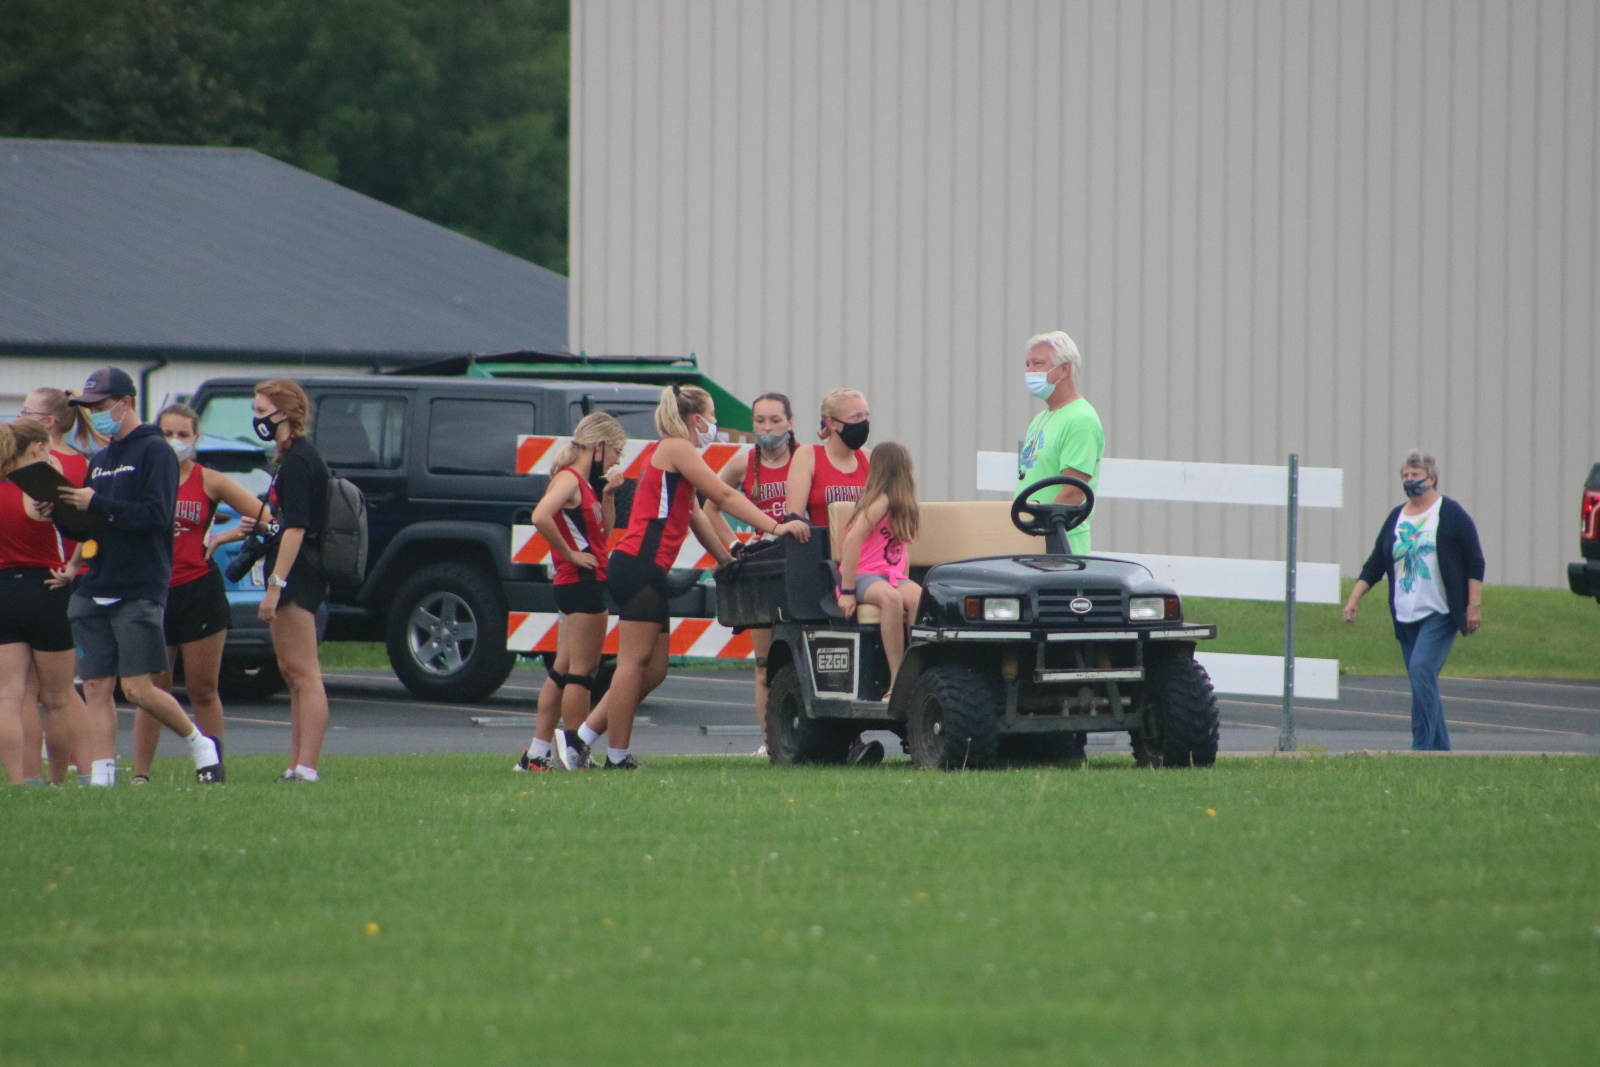 CROSS COUNTRY @ ORRVILLE 8/29/20